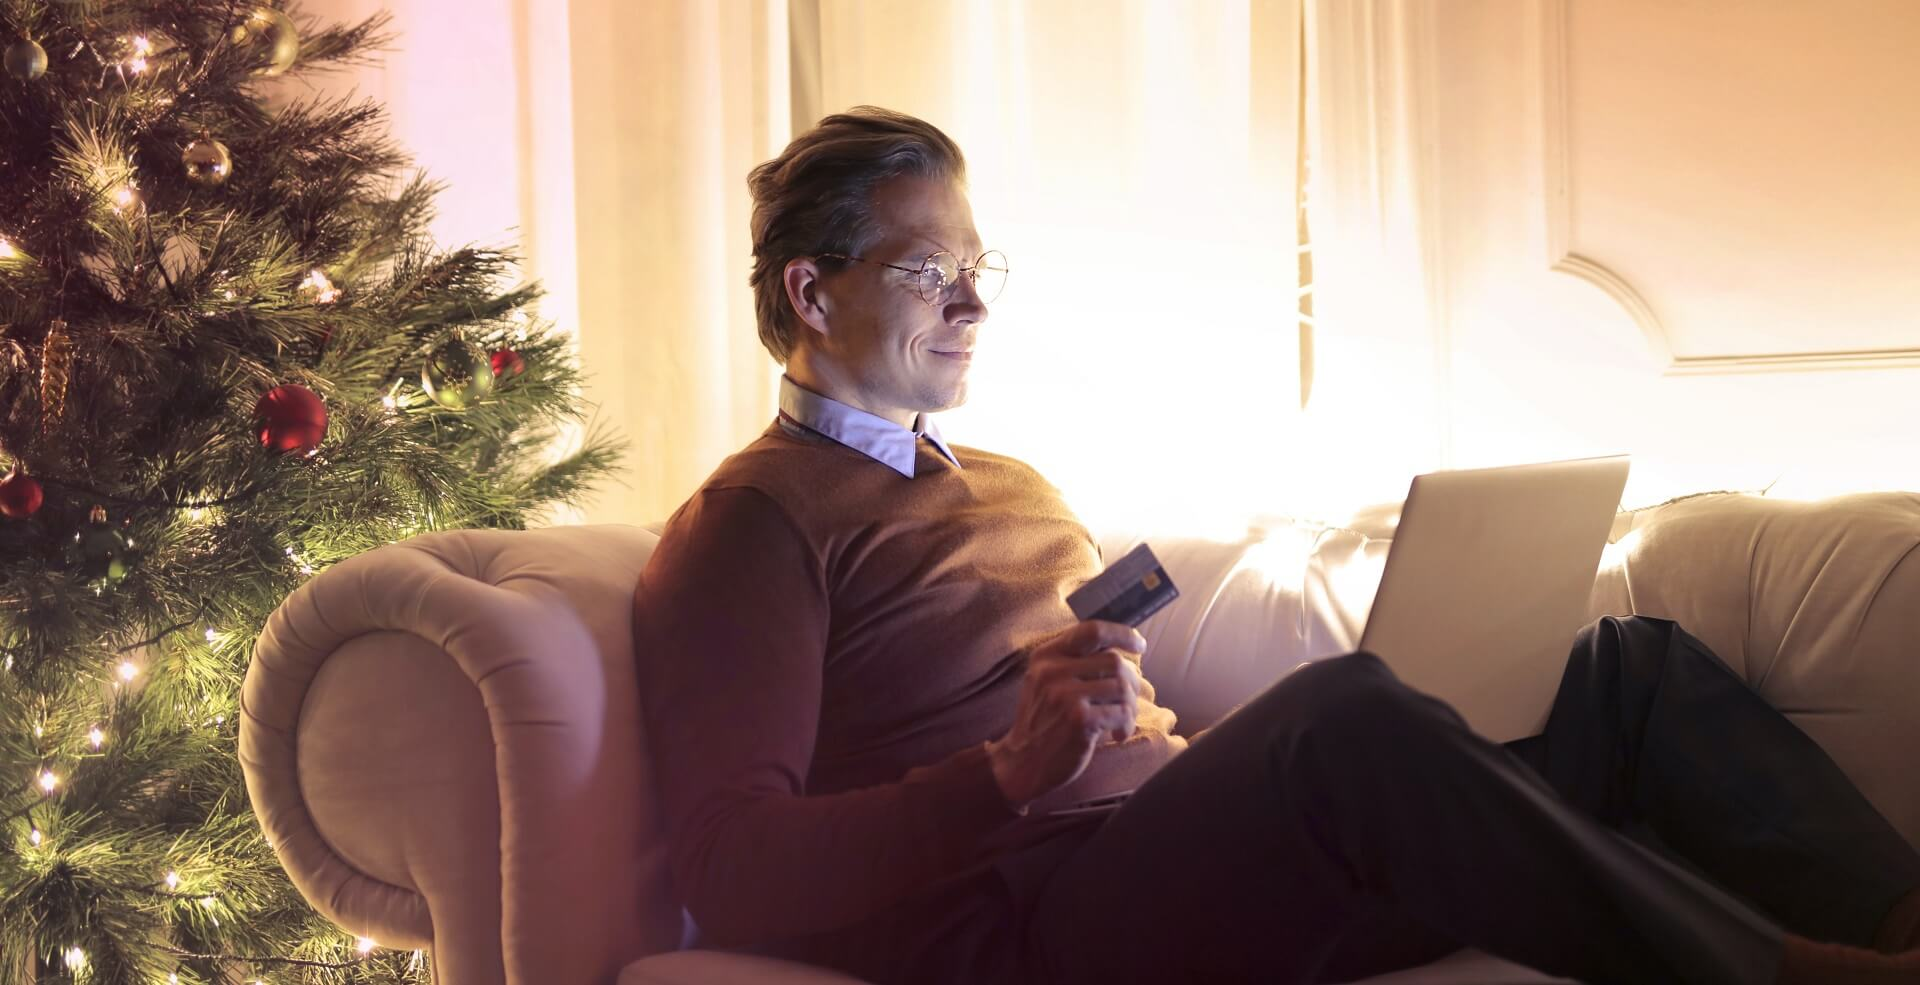 Man on sofa with credit card in hand presumably internet shopping